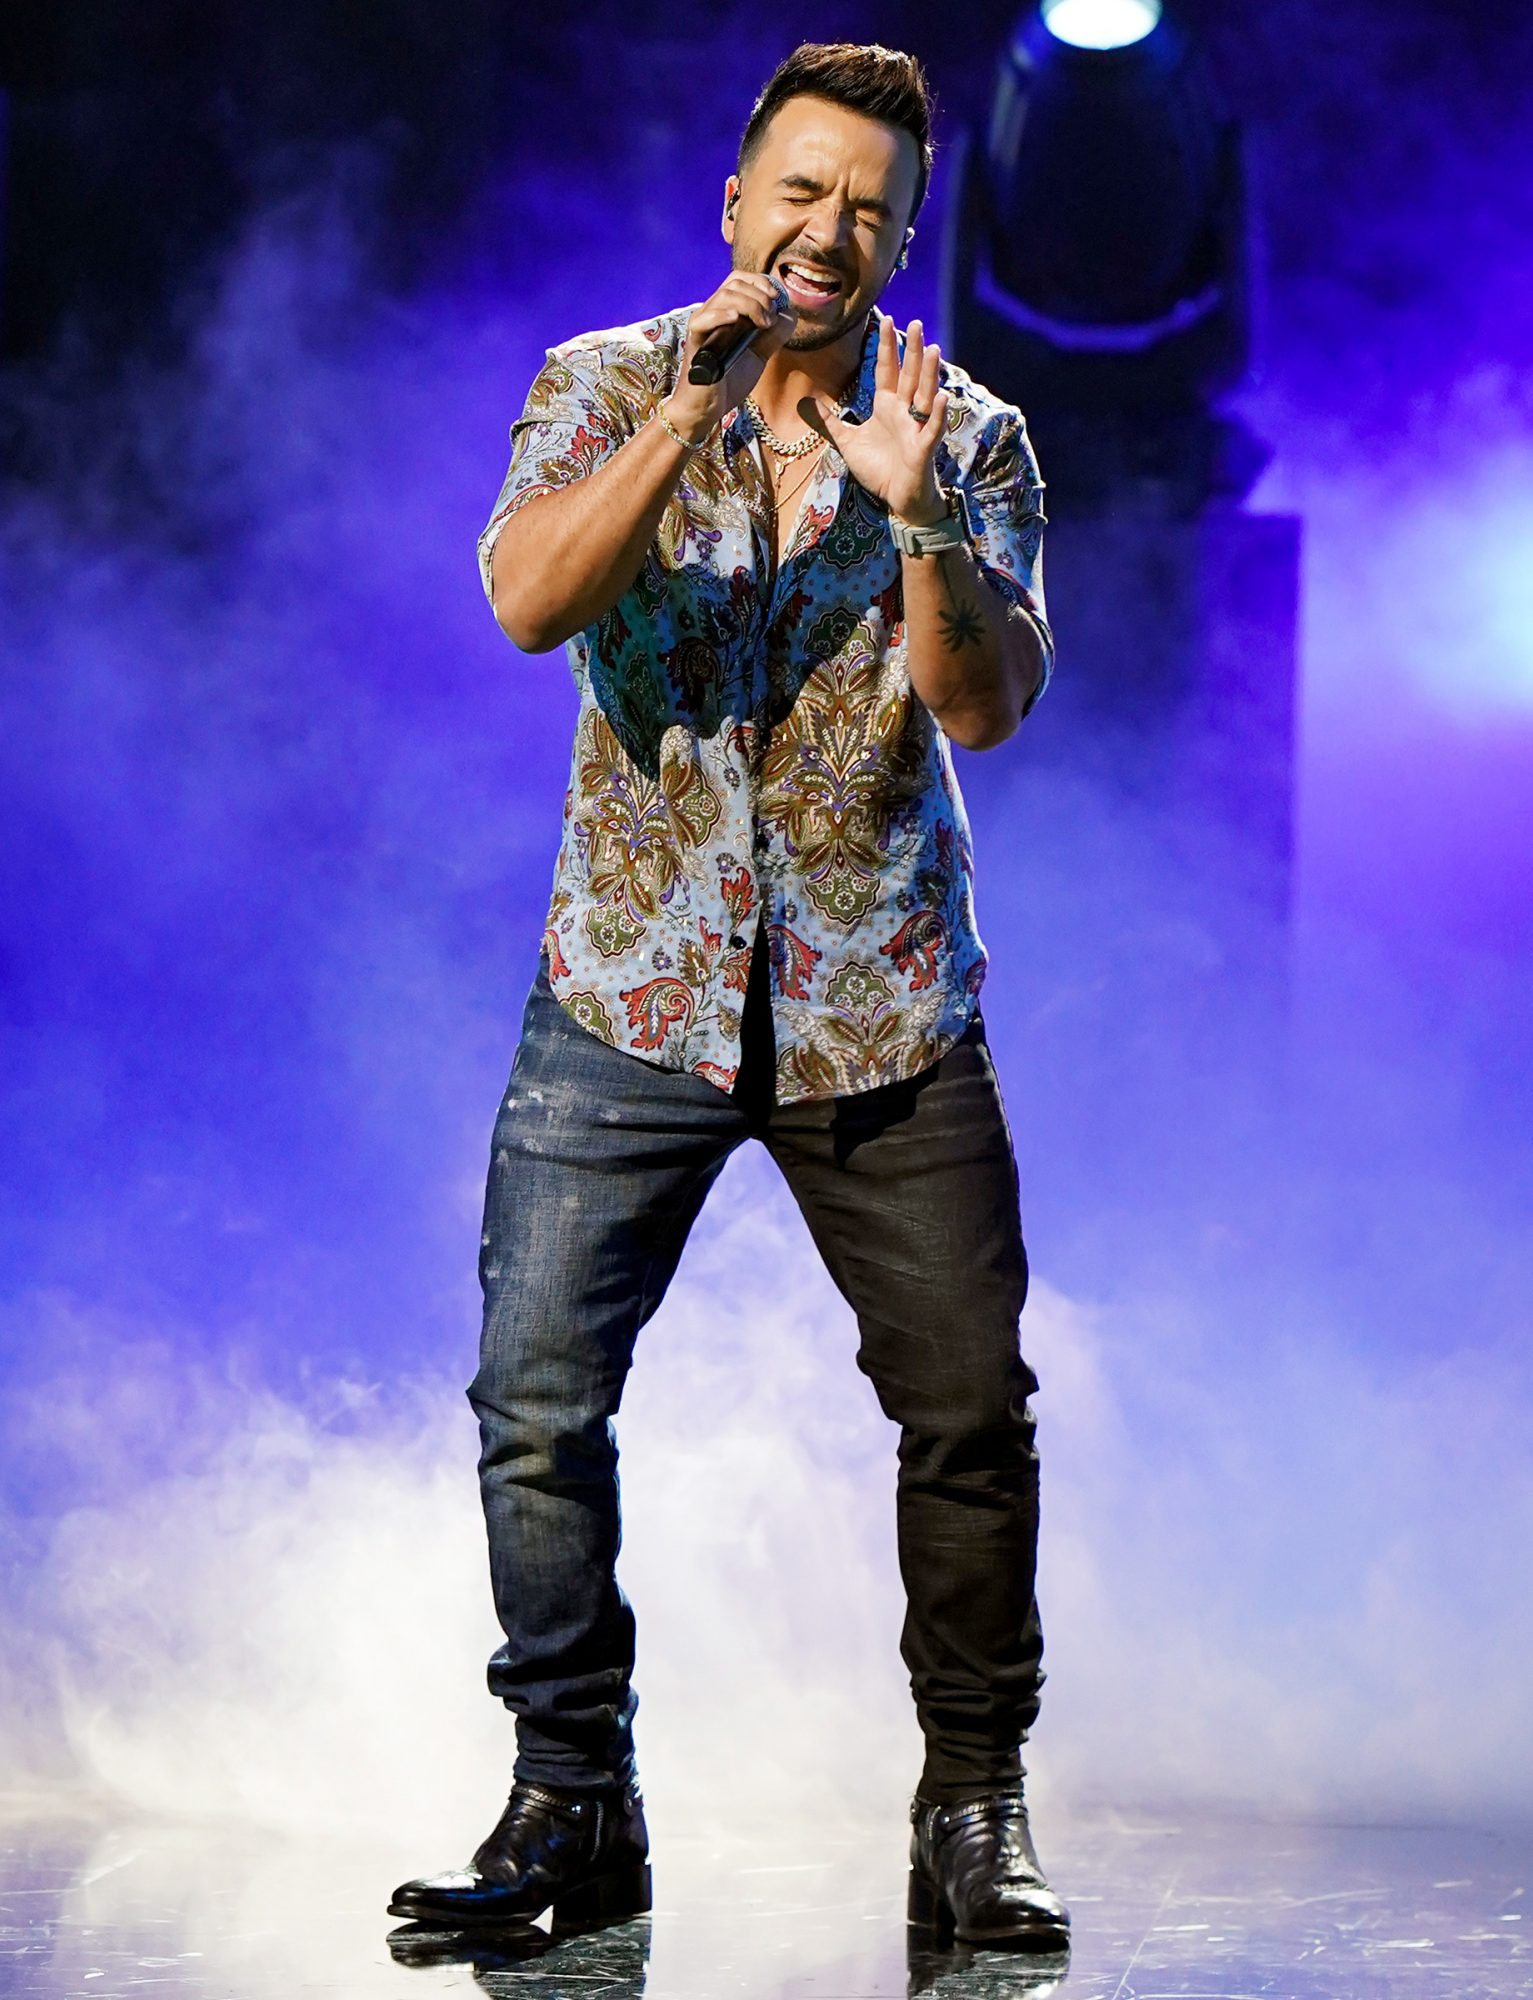 Luis Fonsi performs onstage during rehearsals for Univision's 33rd Edition of Premio Lo Nuestro a la Música Latina at AmericanAirlines Arena on February 16, 2021 in Miami, Florida